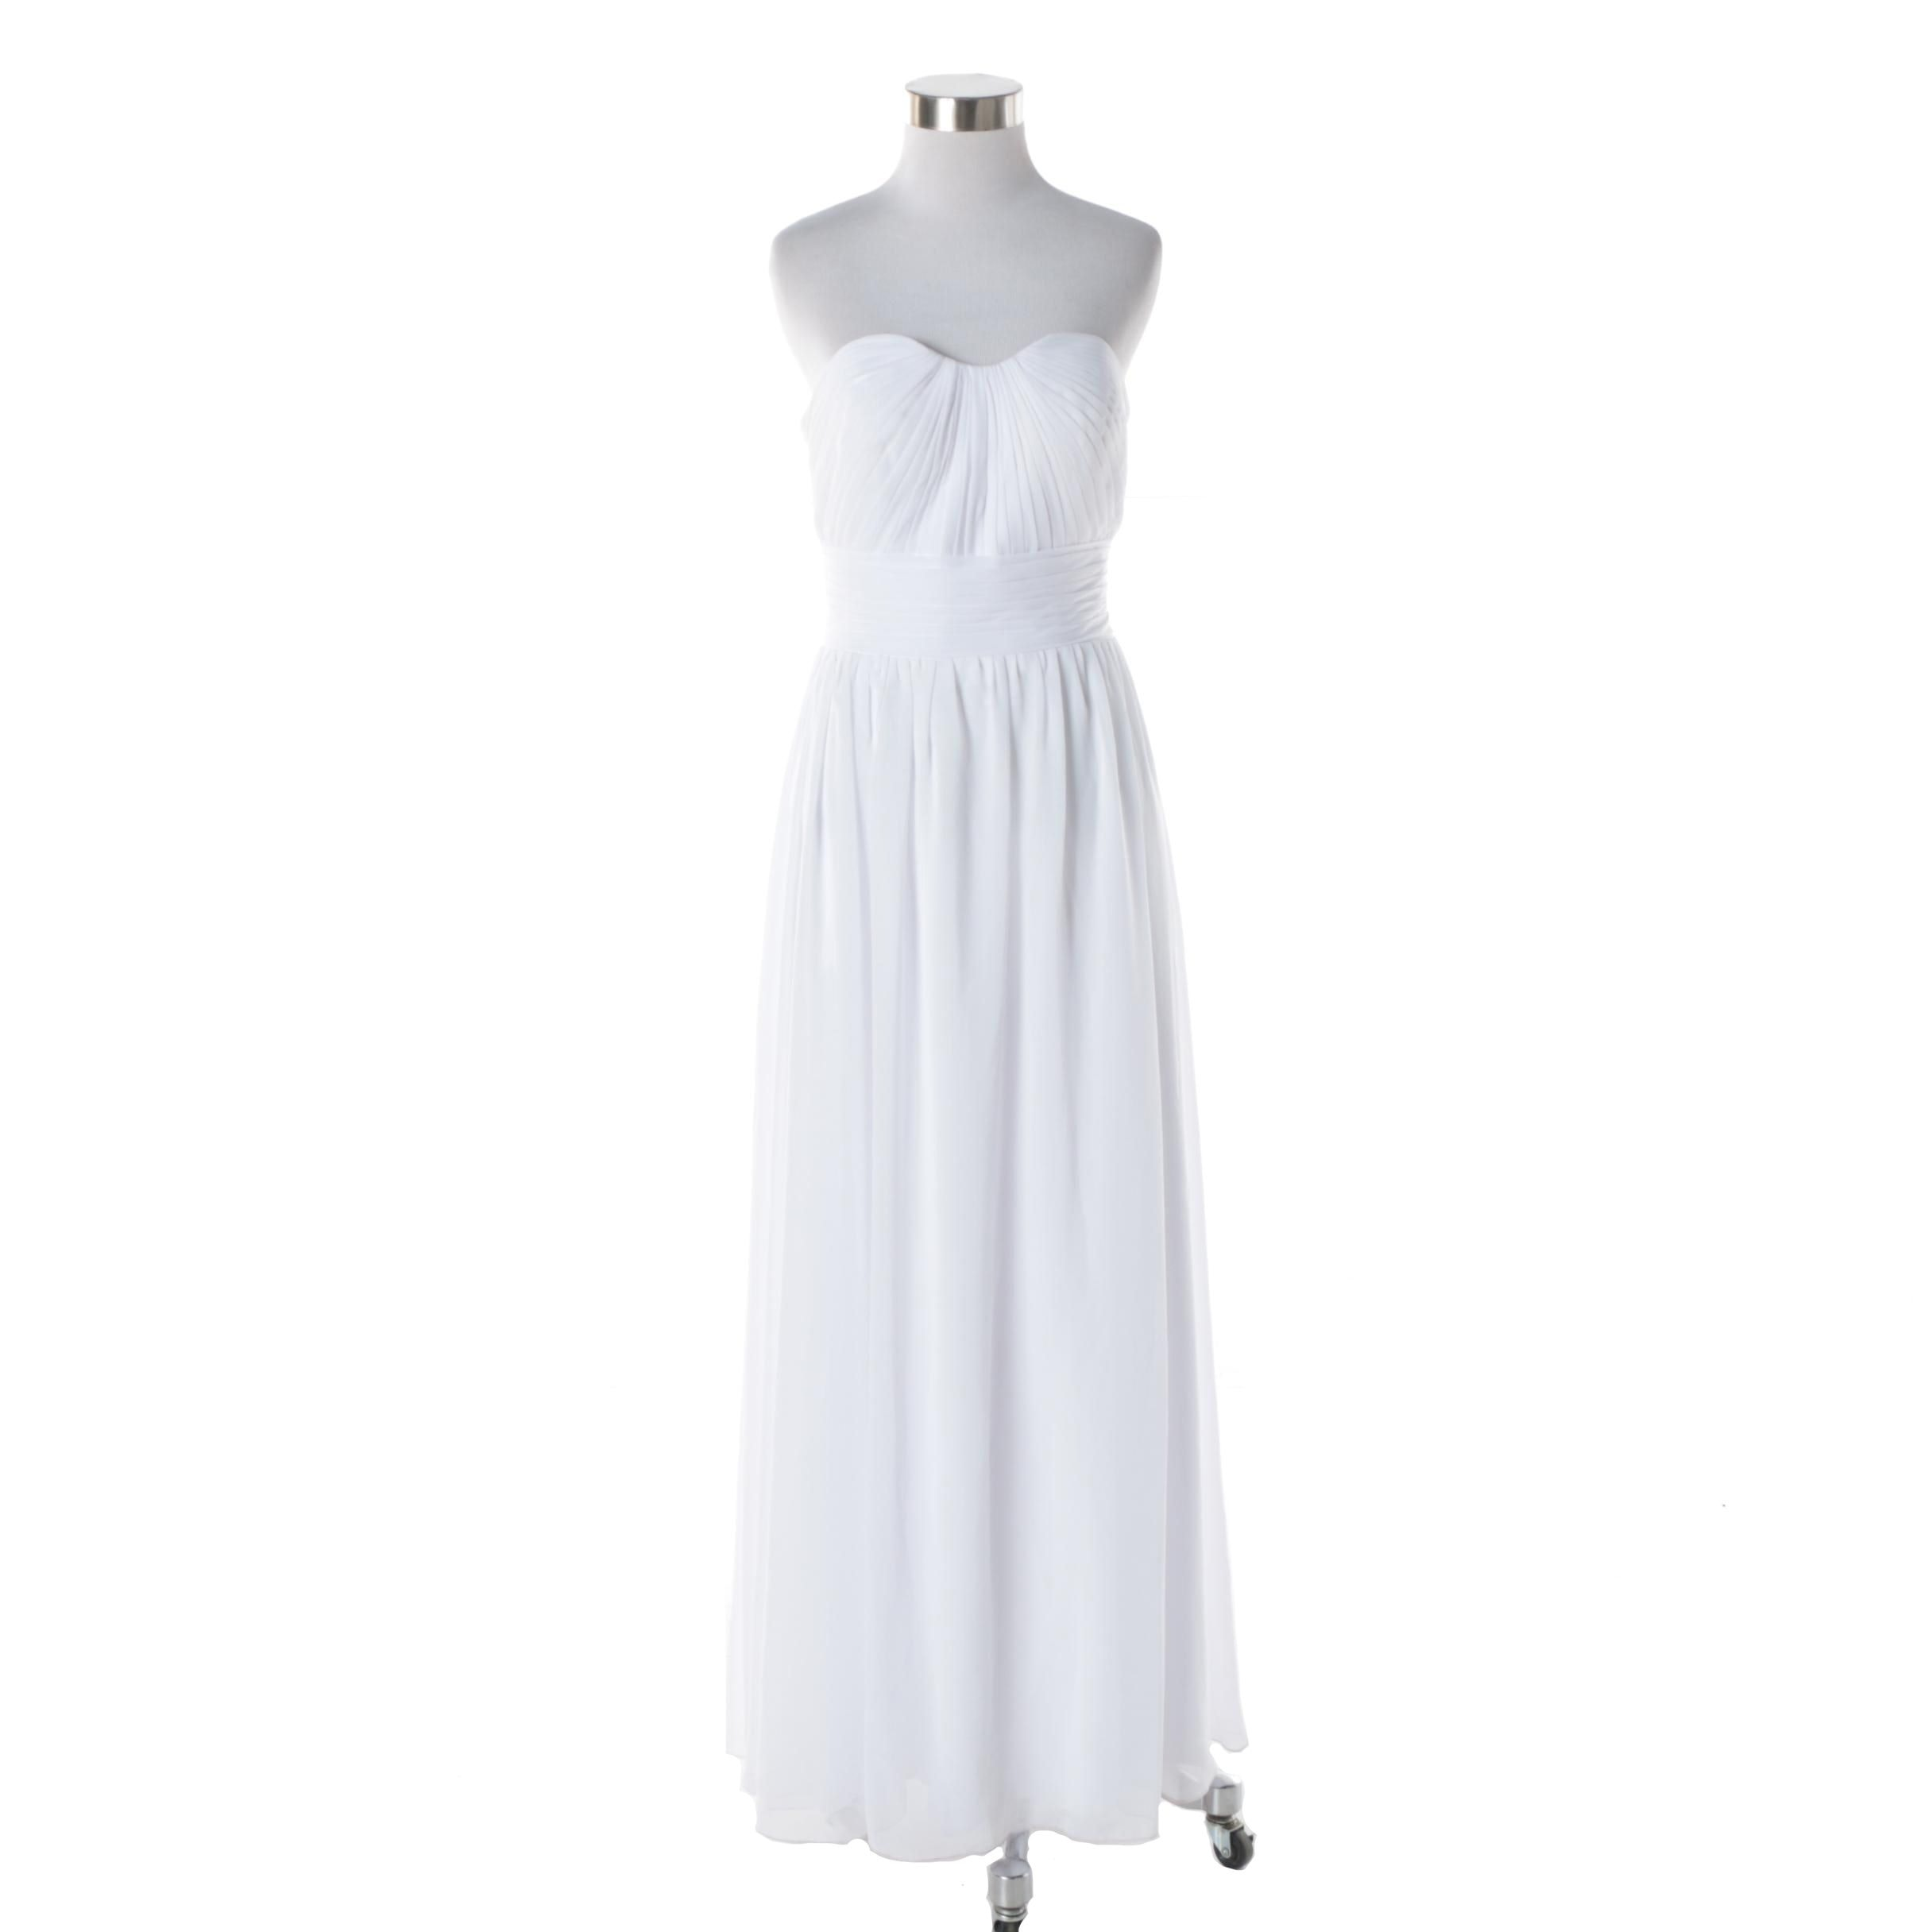 Women's Love Vox White Strapless Bridesmaid Dress